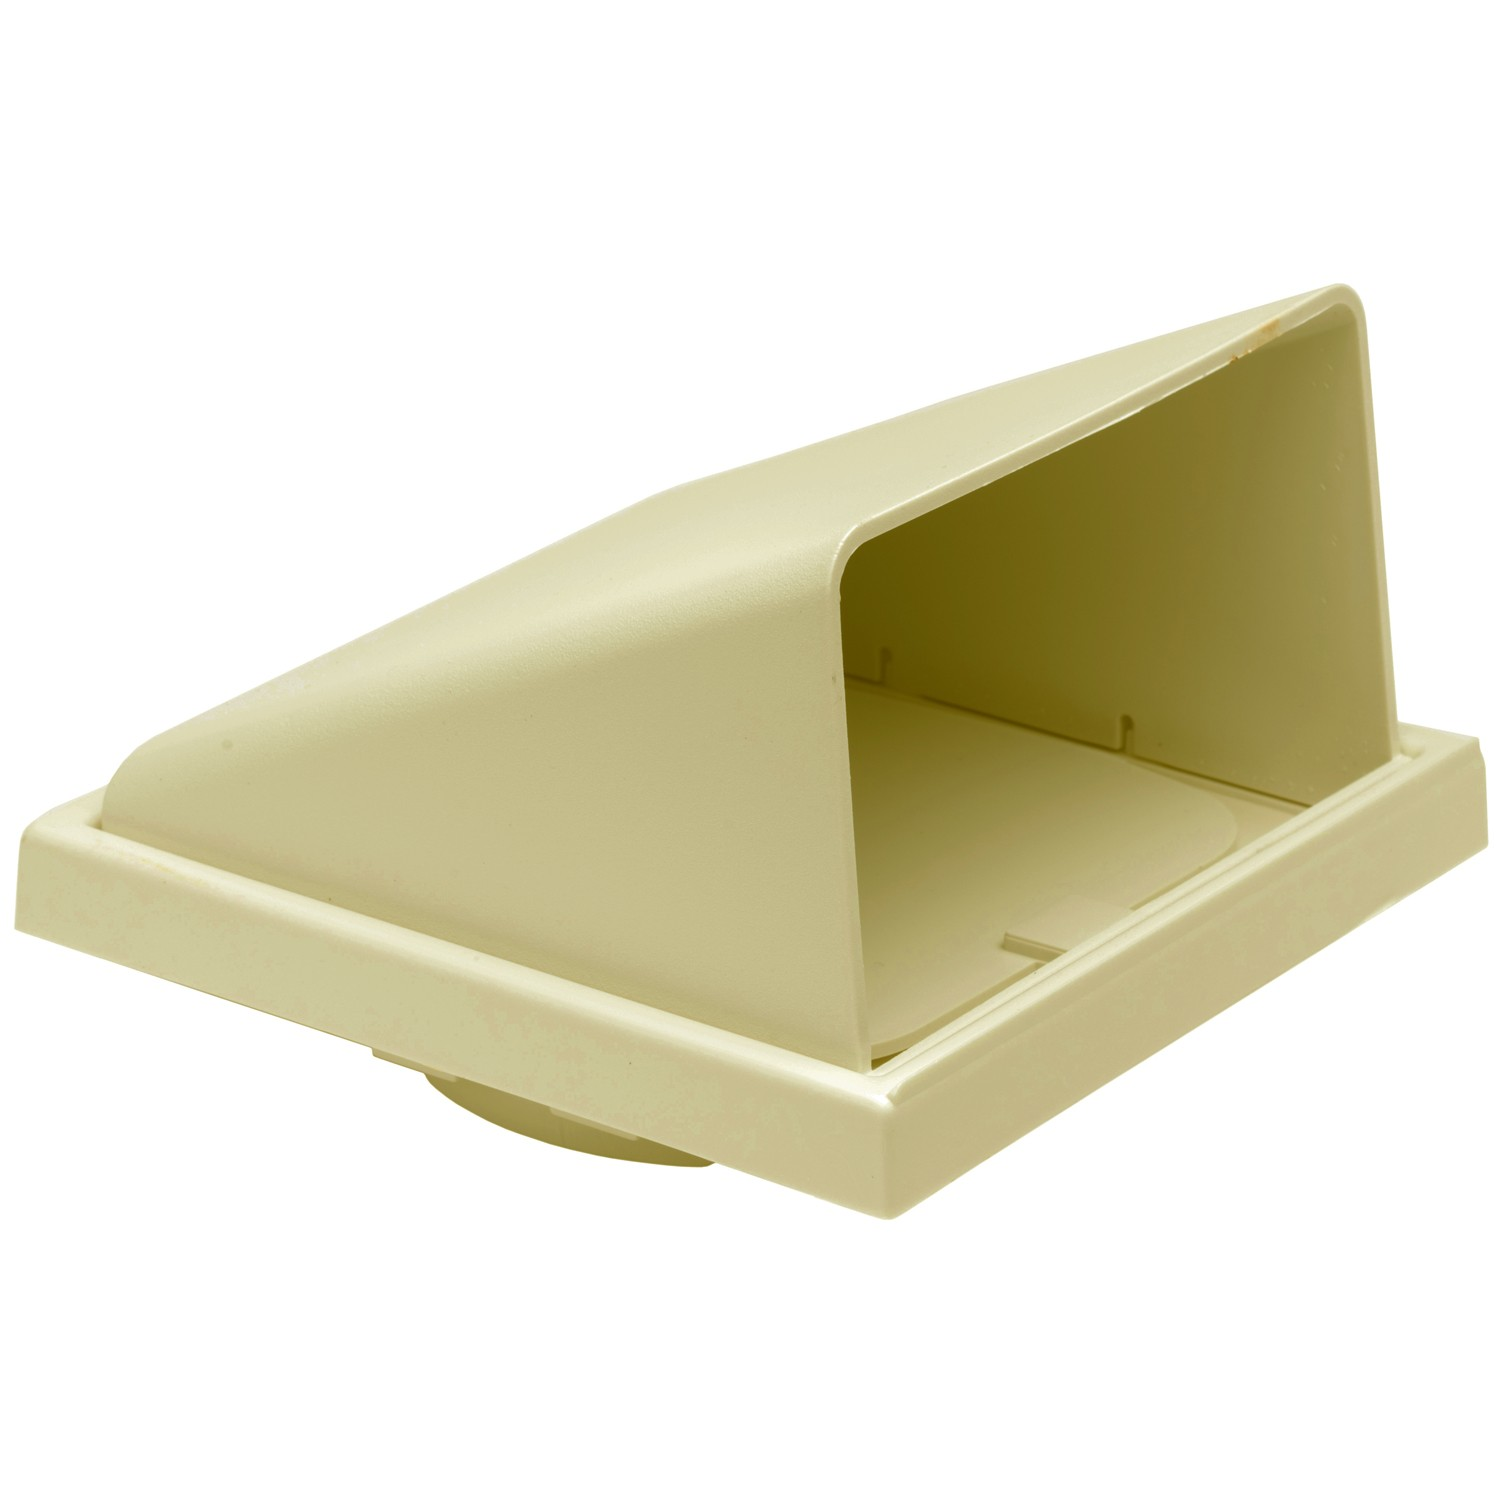 Manrose Round Ducting Pipe Wall Hood Cowled Outlet - Cream, 125mm